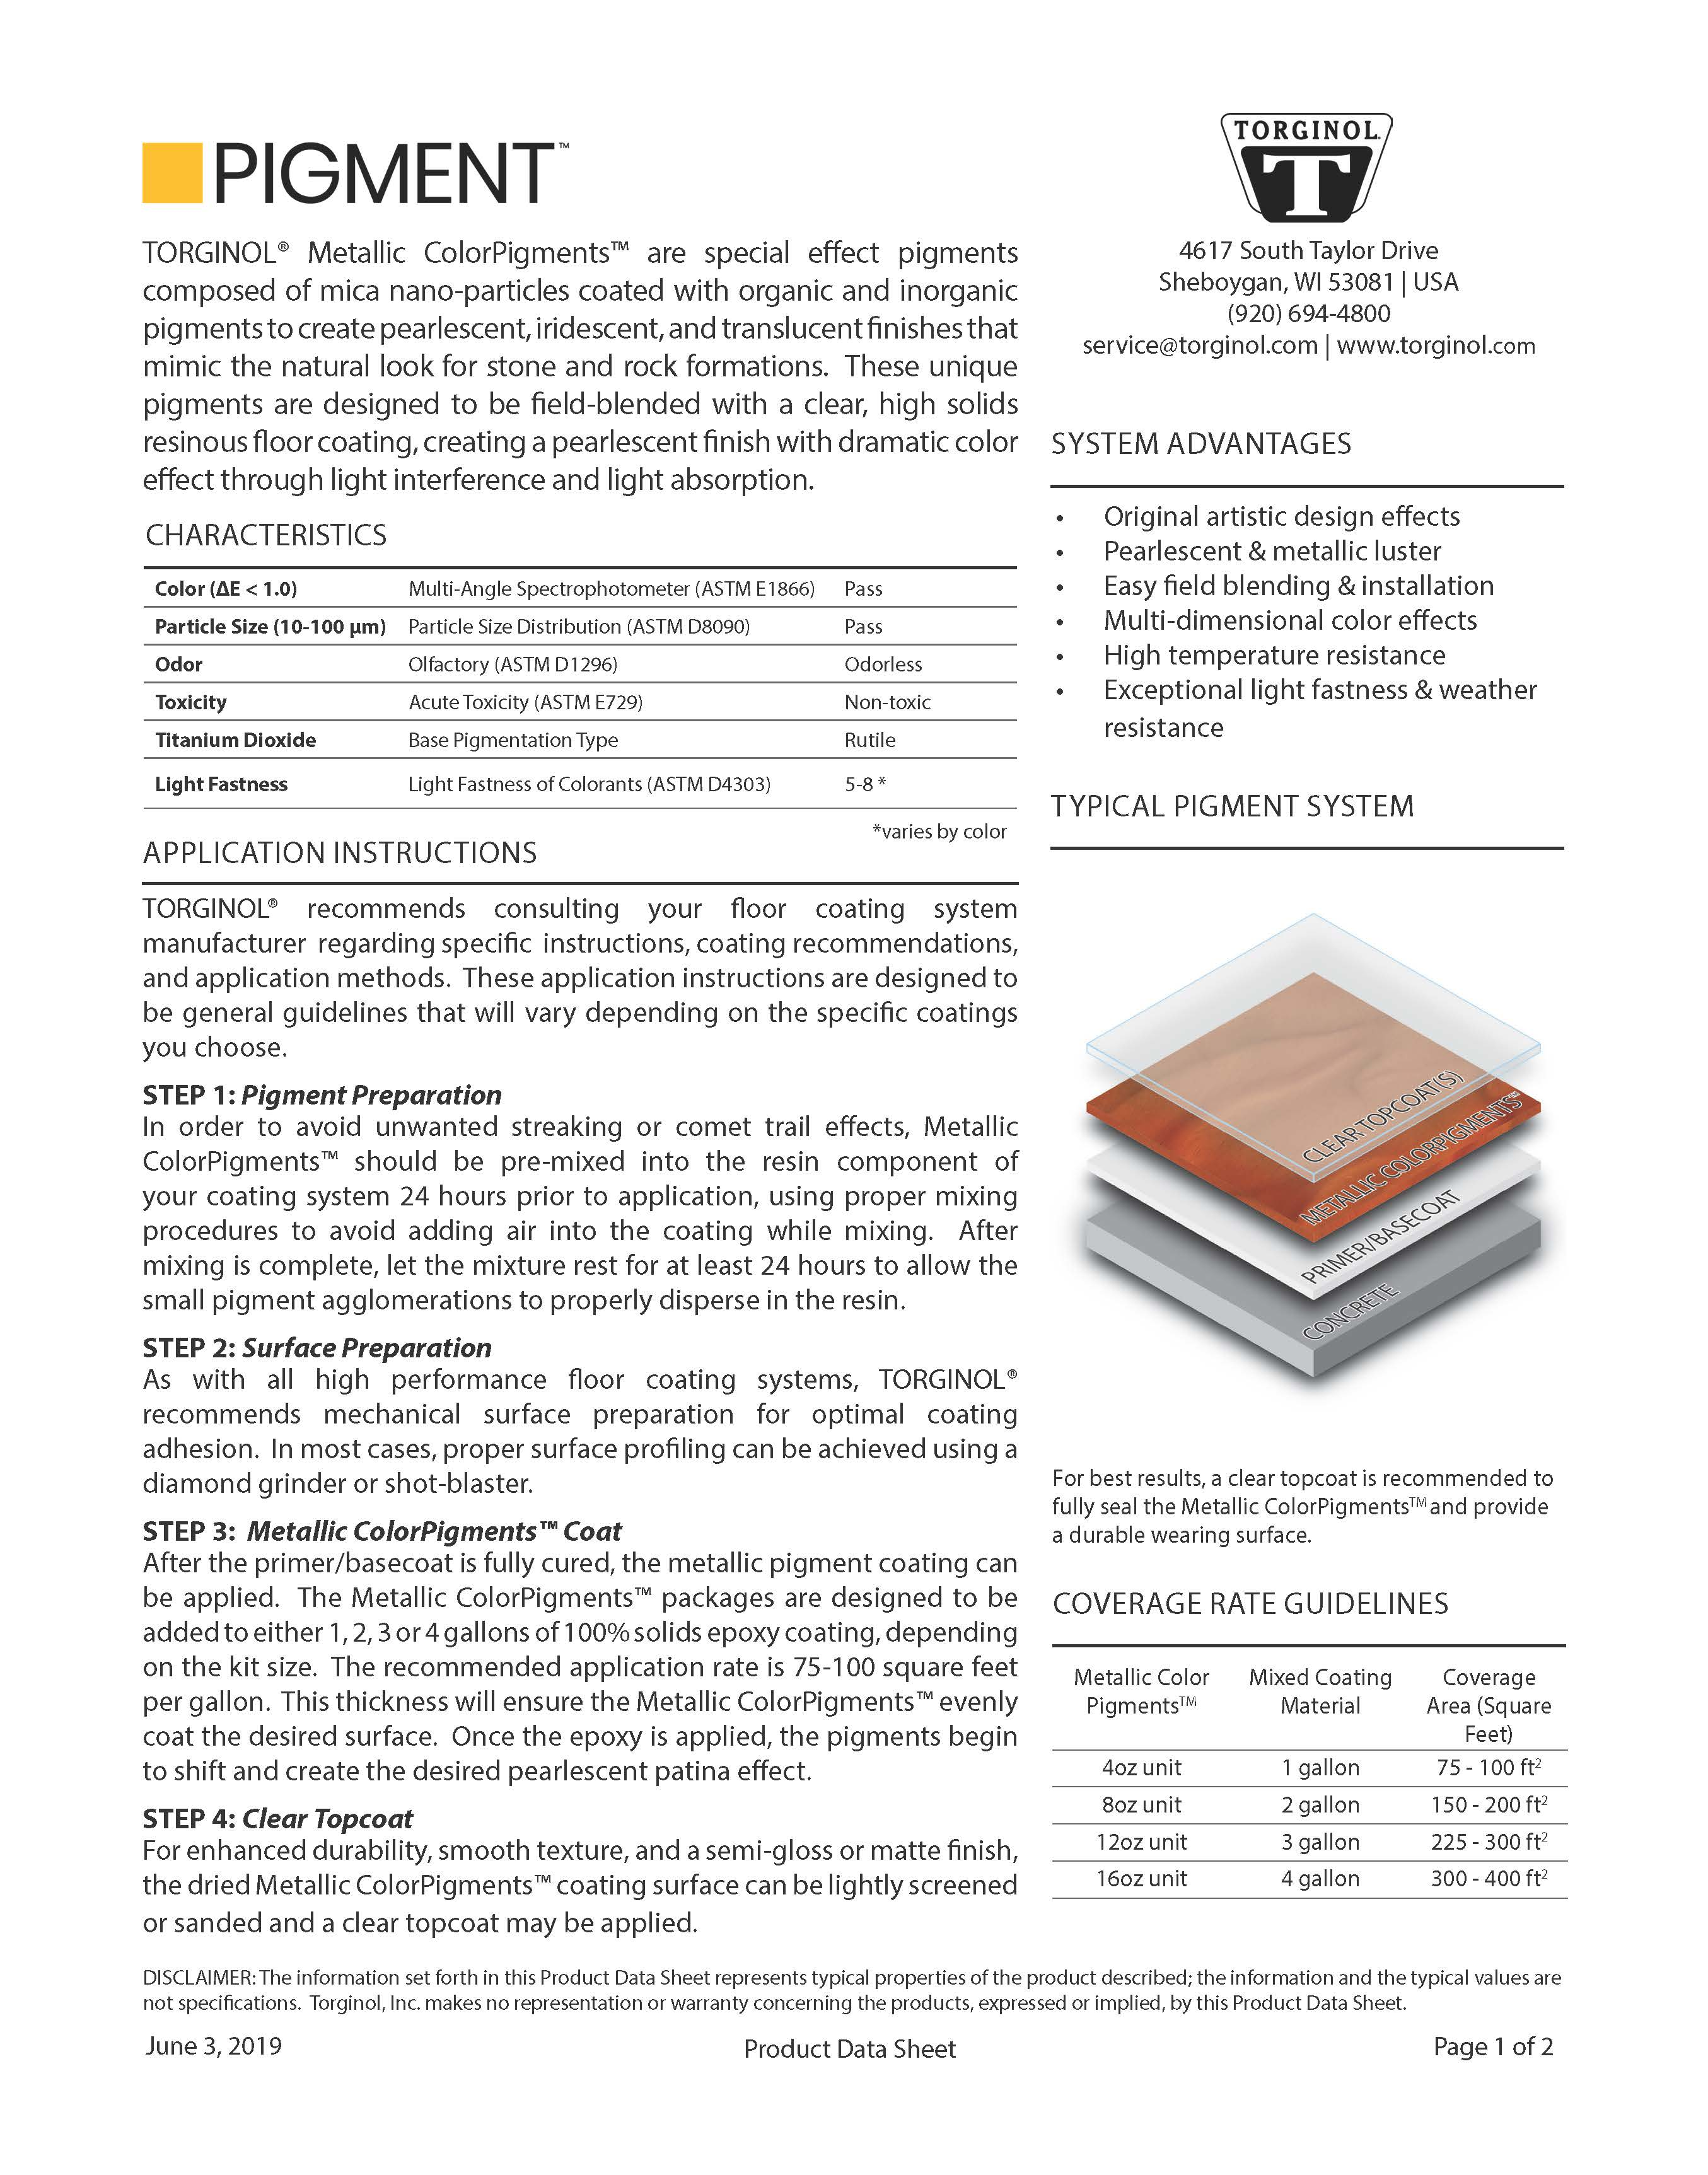 PIGMENT Technical Data Sheet